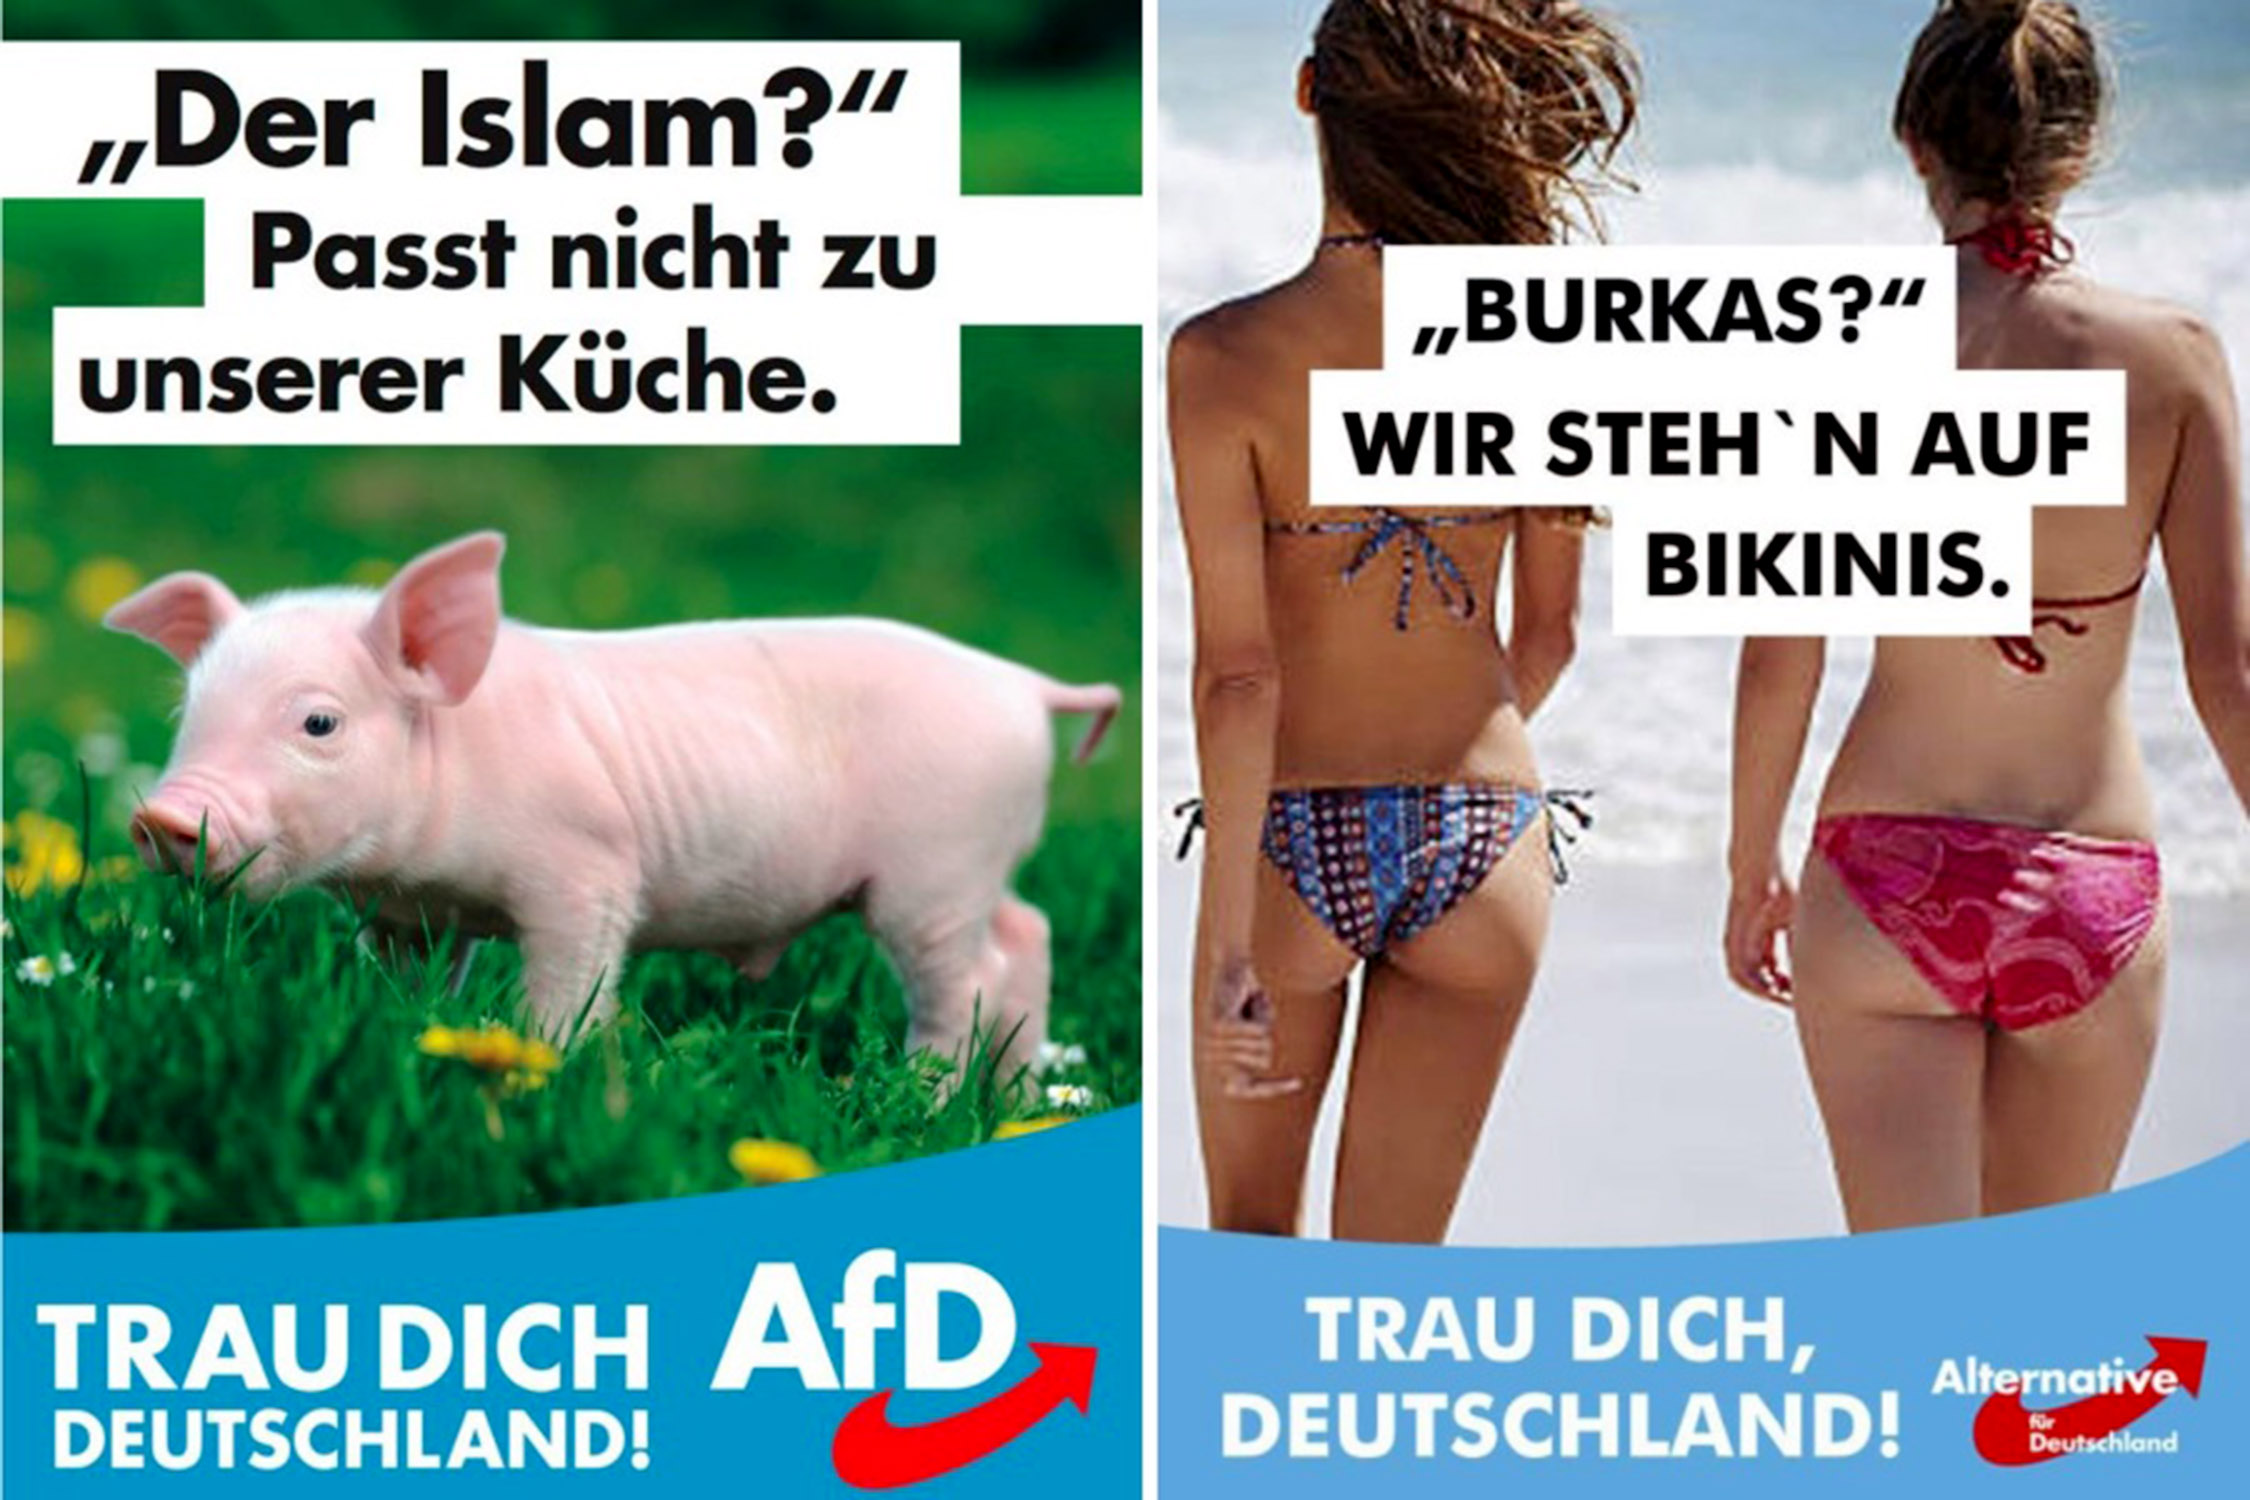 Afd Der Islam Passt Nicht In Unsere Küche 2017 In Review Politics Never A Dull Moment The Sunday Times